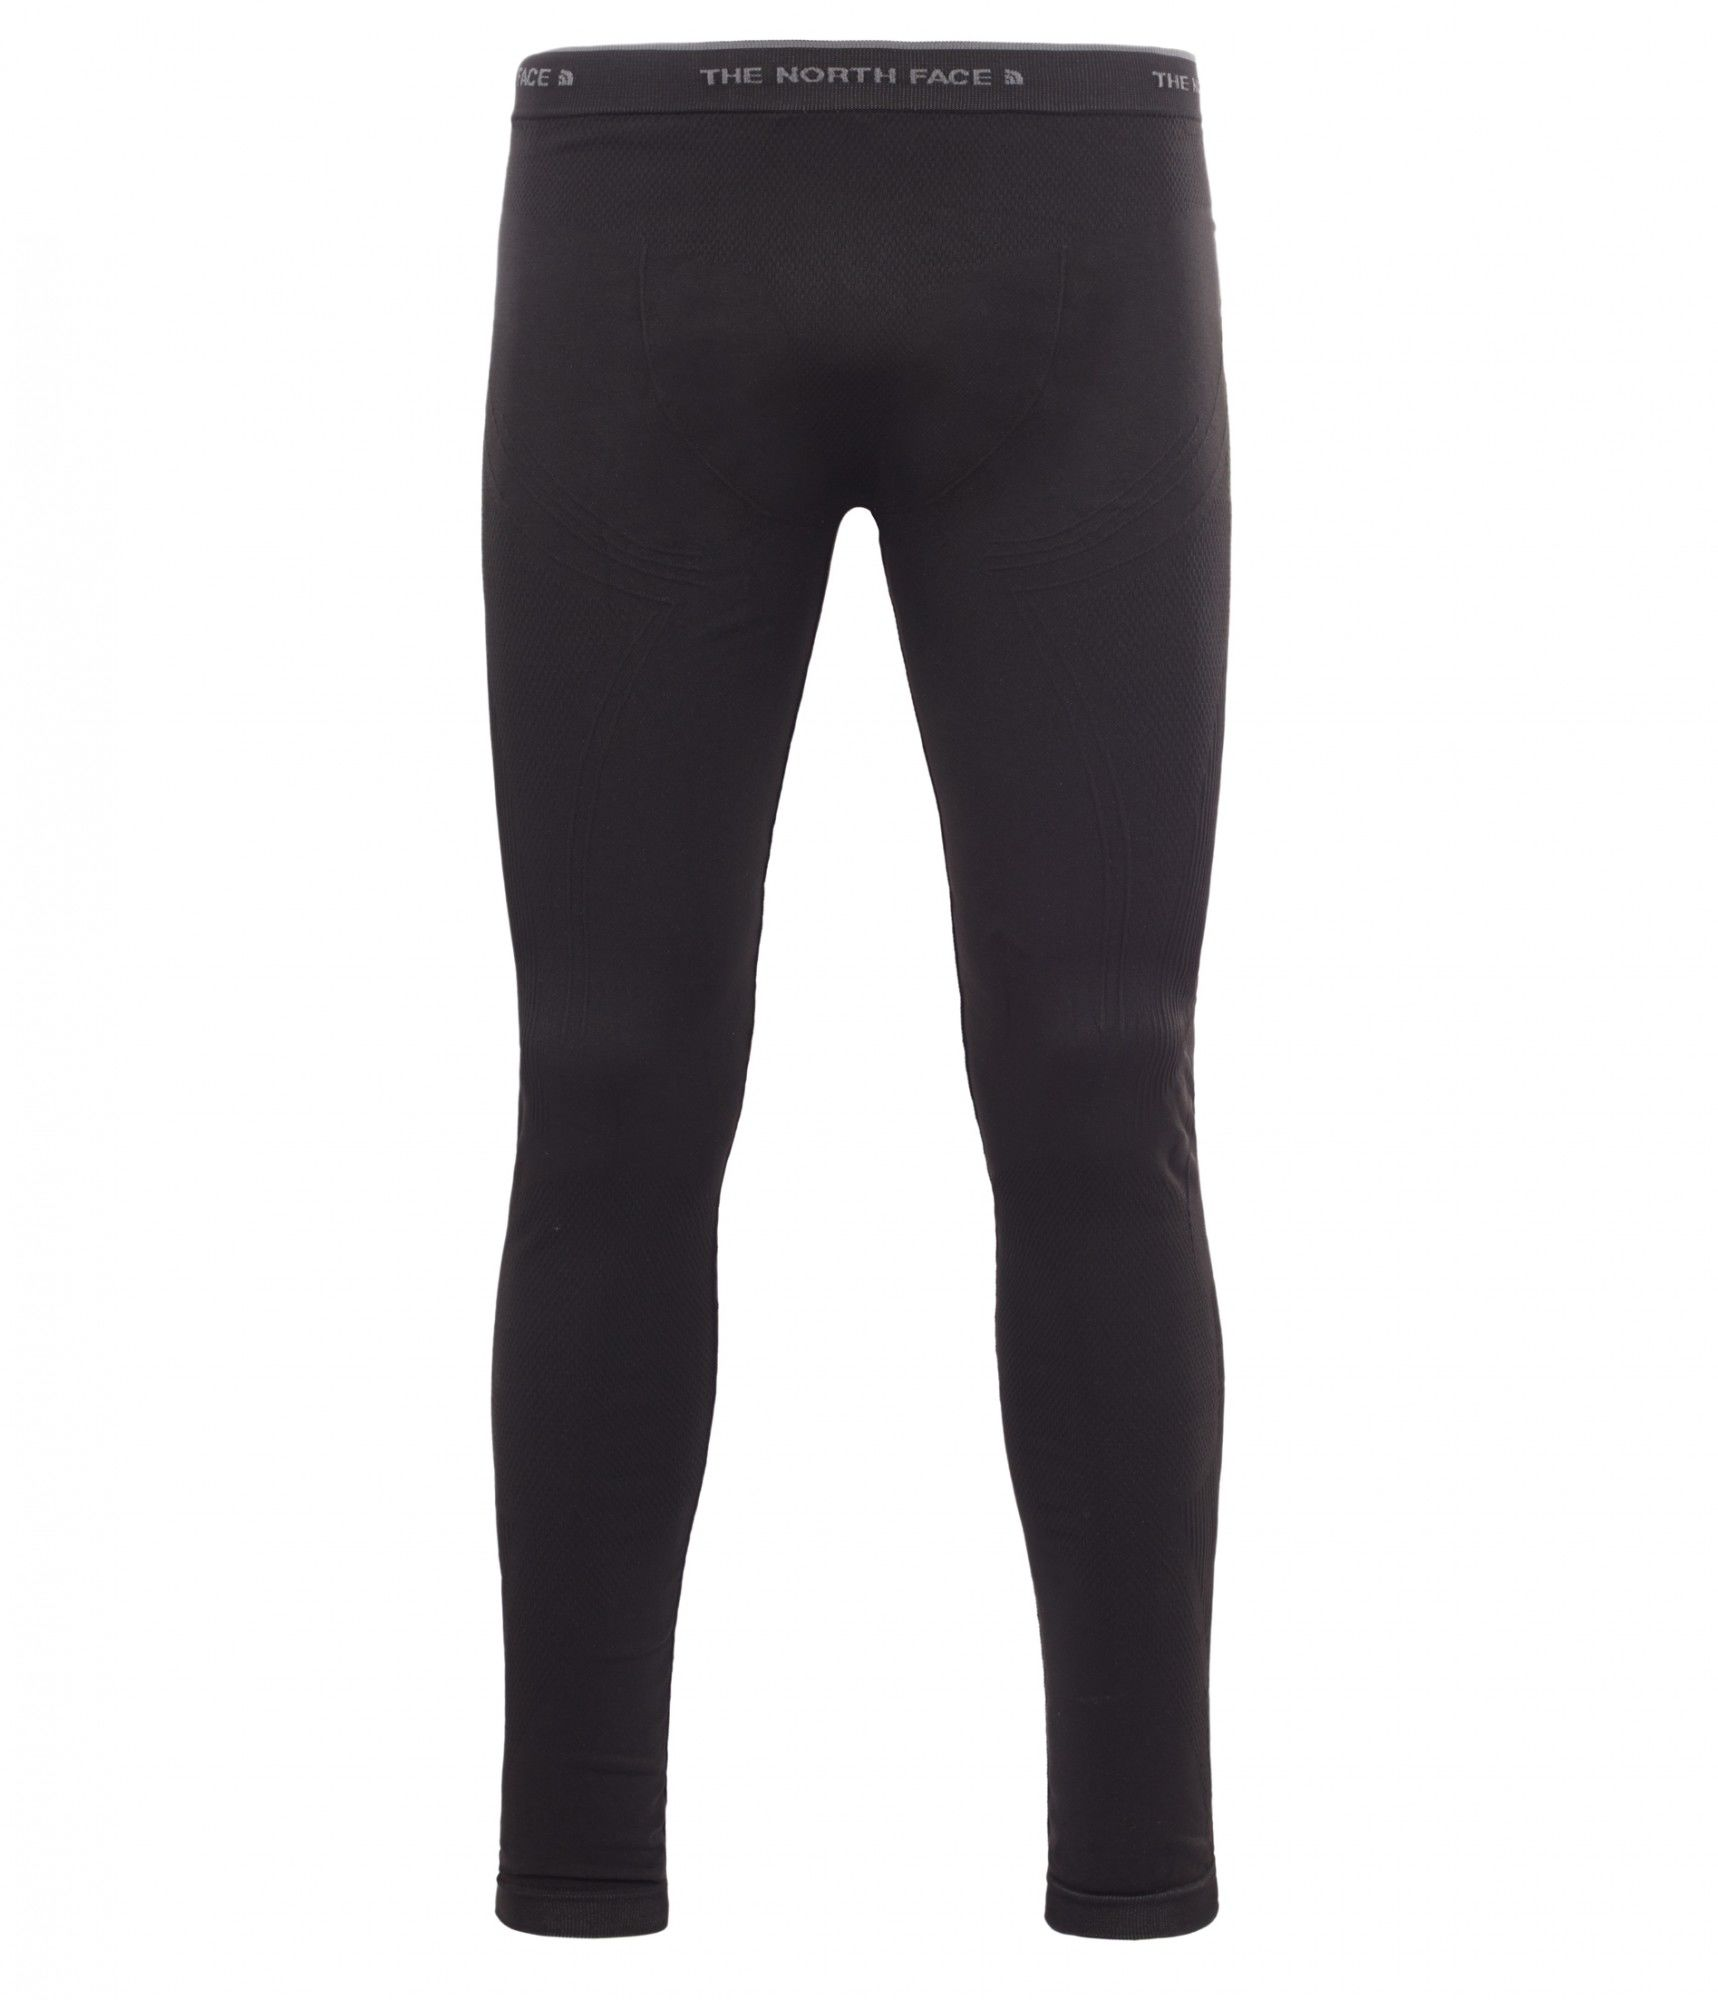 The North Face Hybrid Tights Schwarz, Male Tights, L/XL